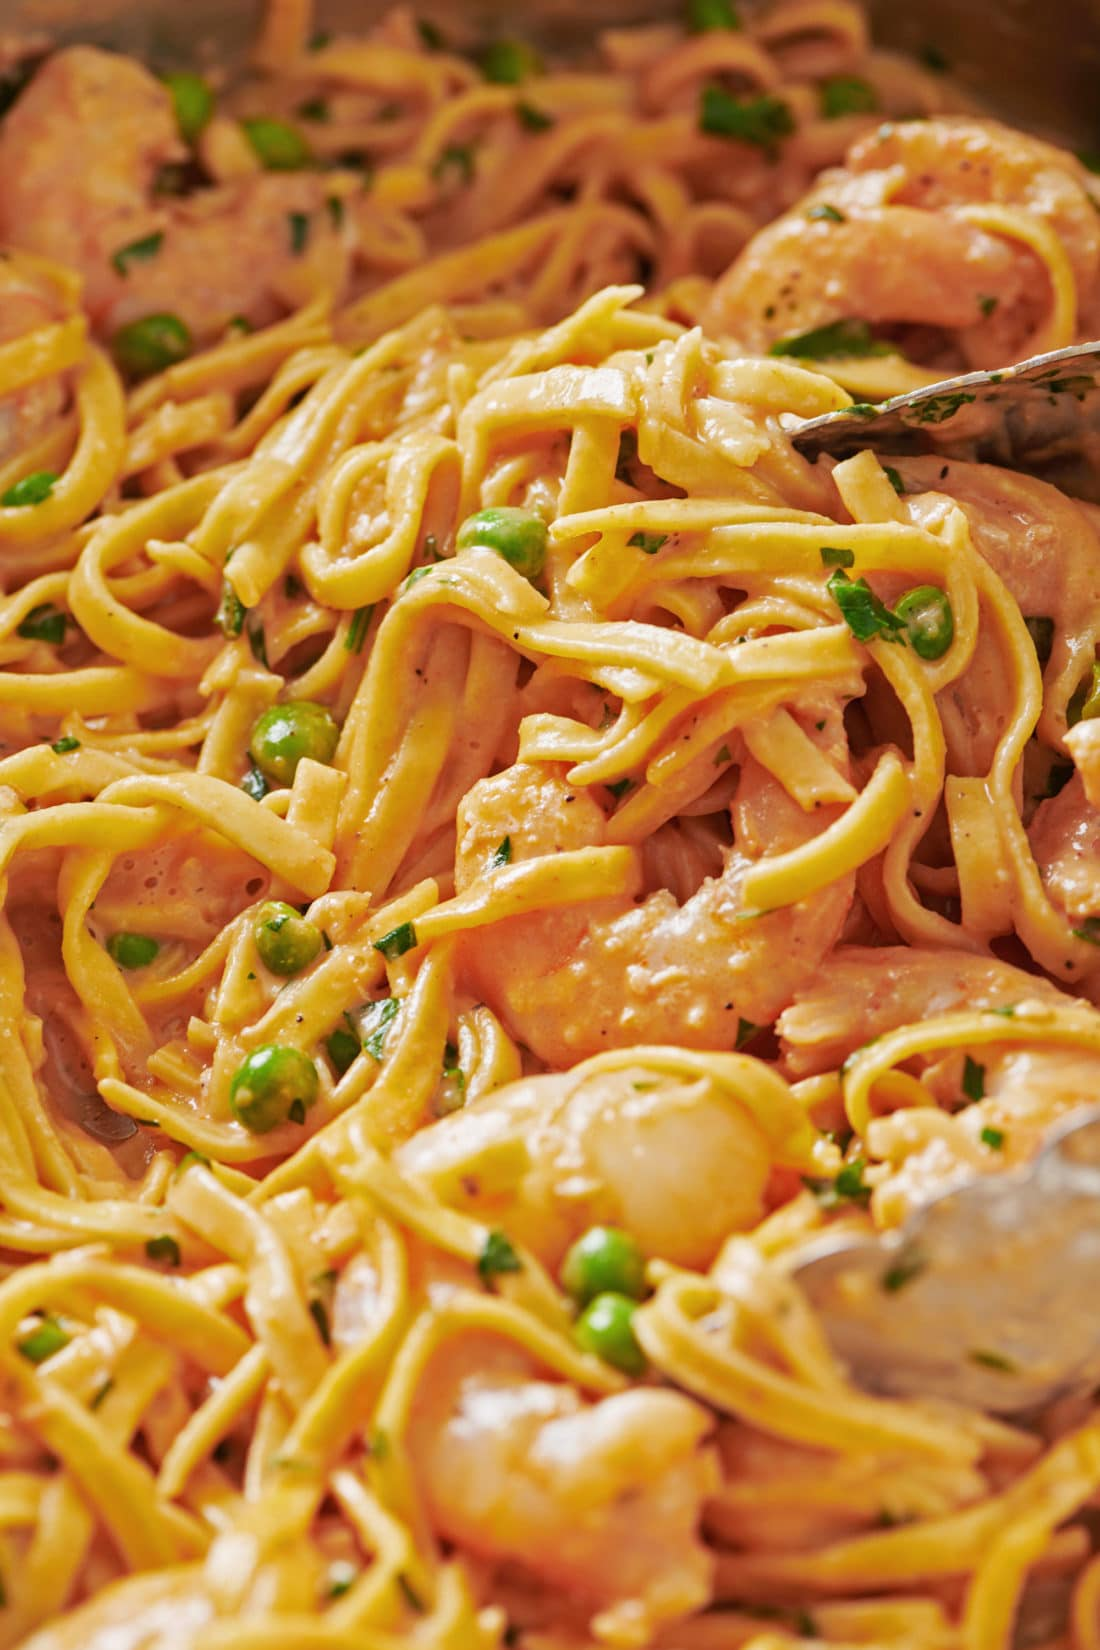 Fresh Linguine with Shrimp and Peas in a Pink Cream Sauce